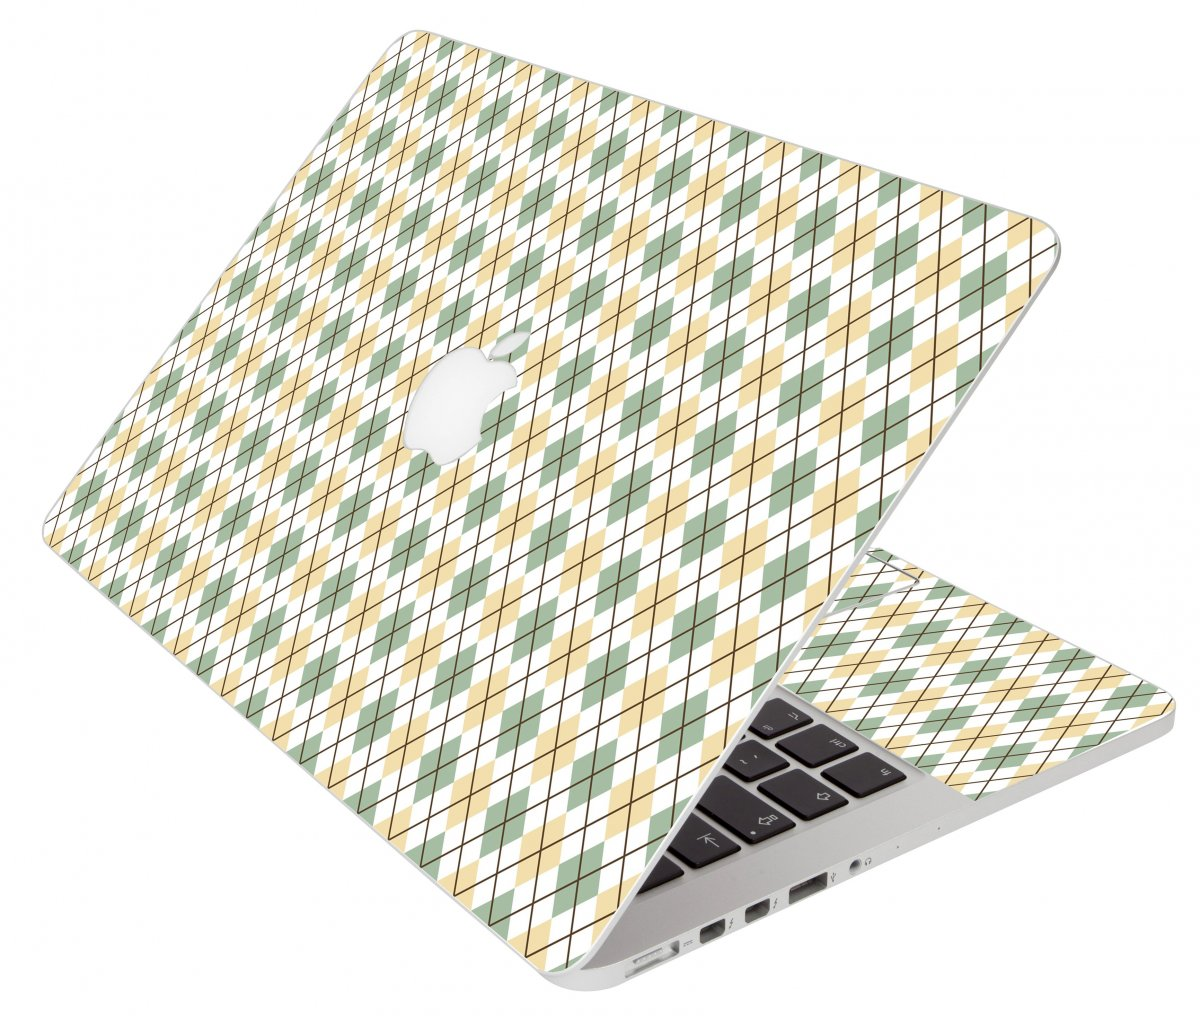 Argyle Apple Macbook Original 13 A1181 Laptop Skin